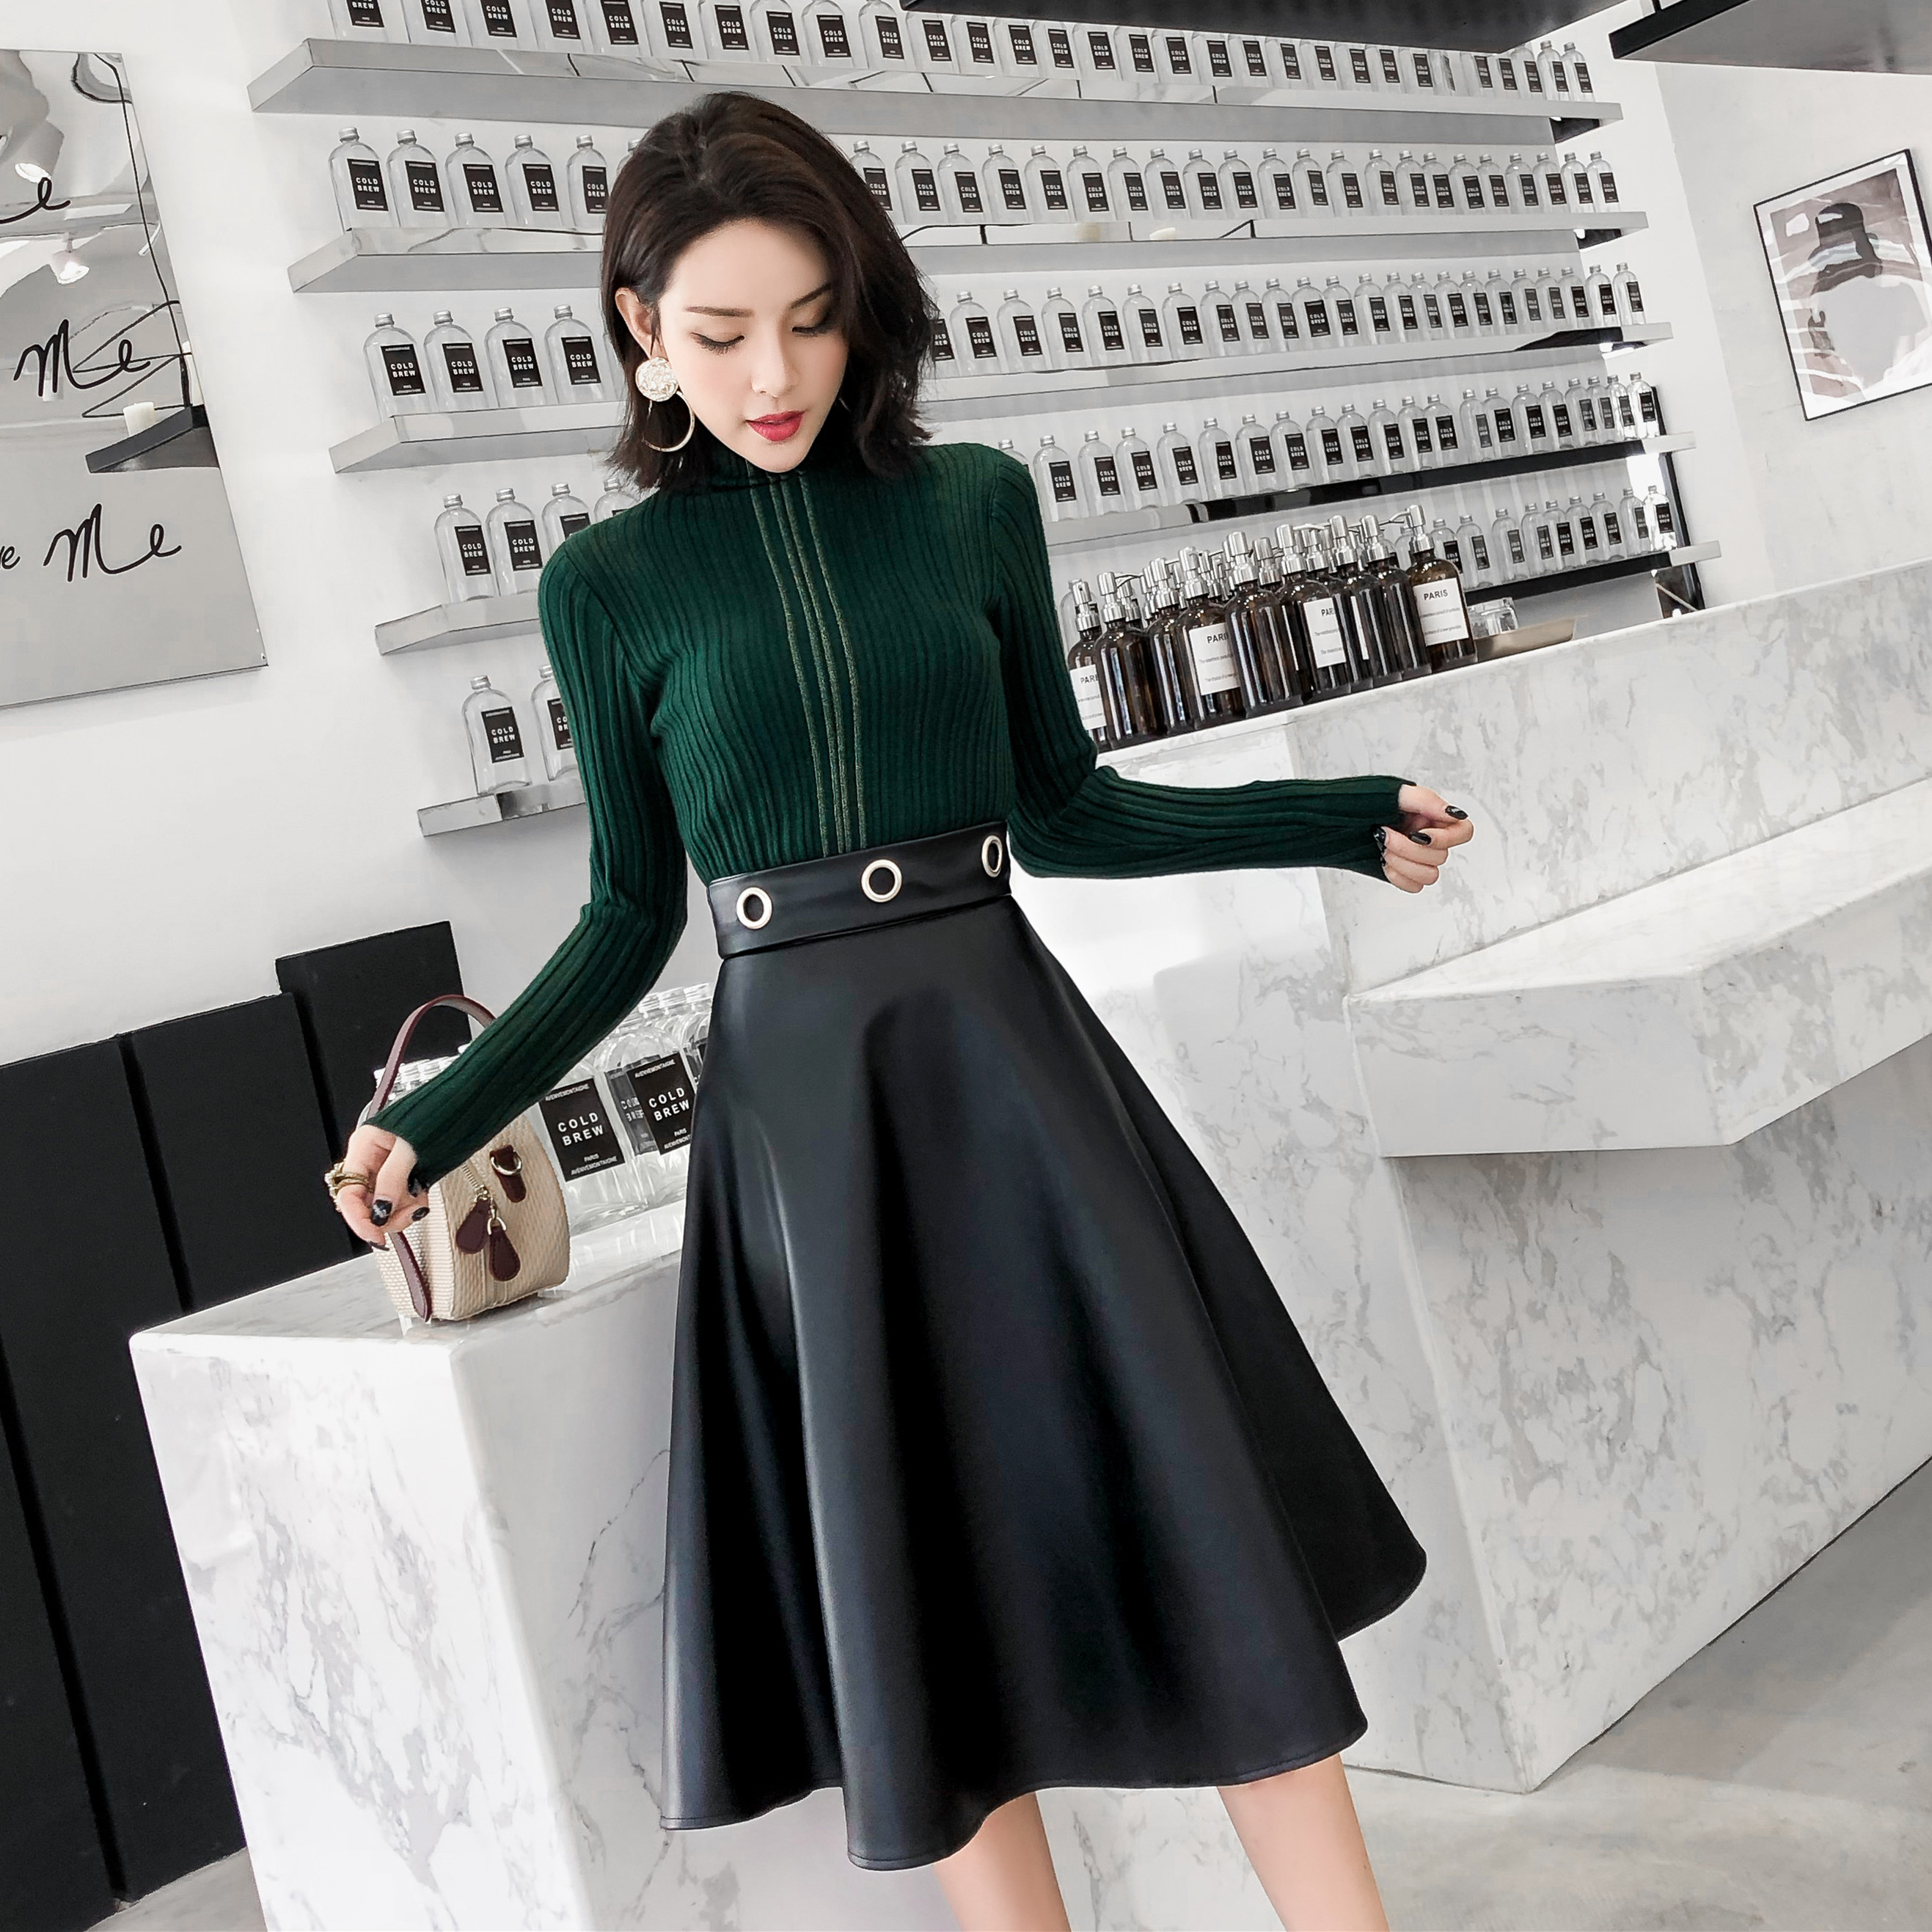 Autumn Winter New Women Solid Color PU Leather Skirt High Waist Prominent Figure Office Lady Knee-Length A Word Skirt 9216